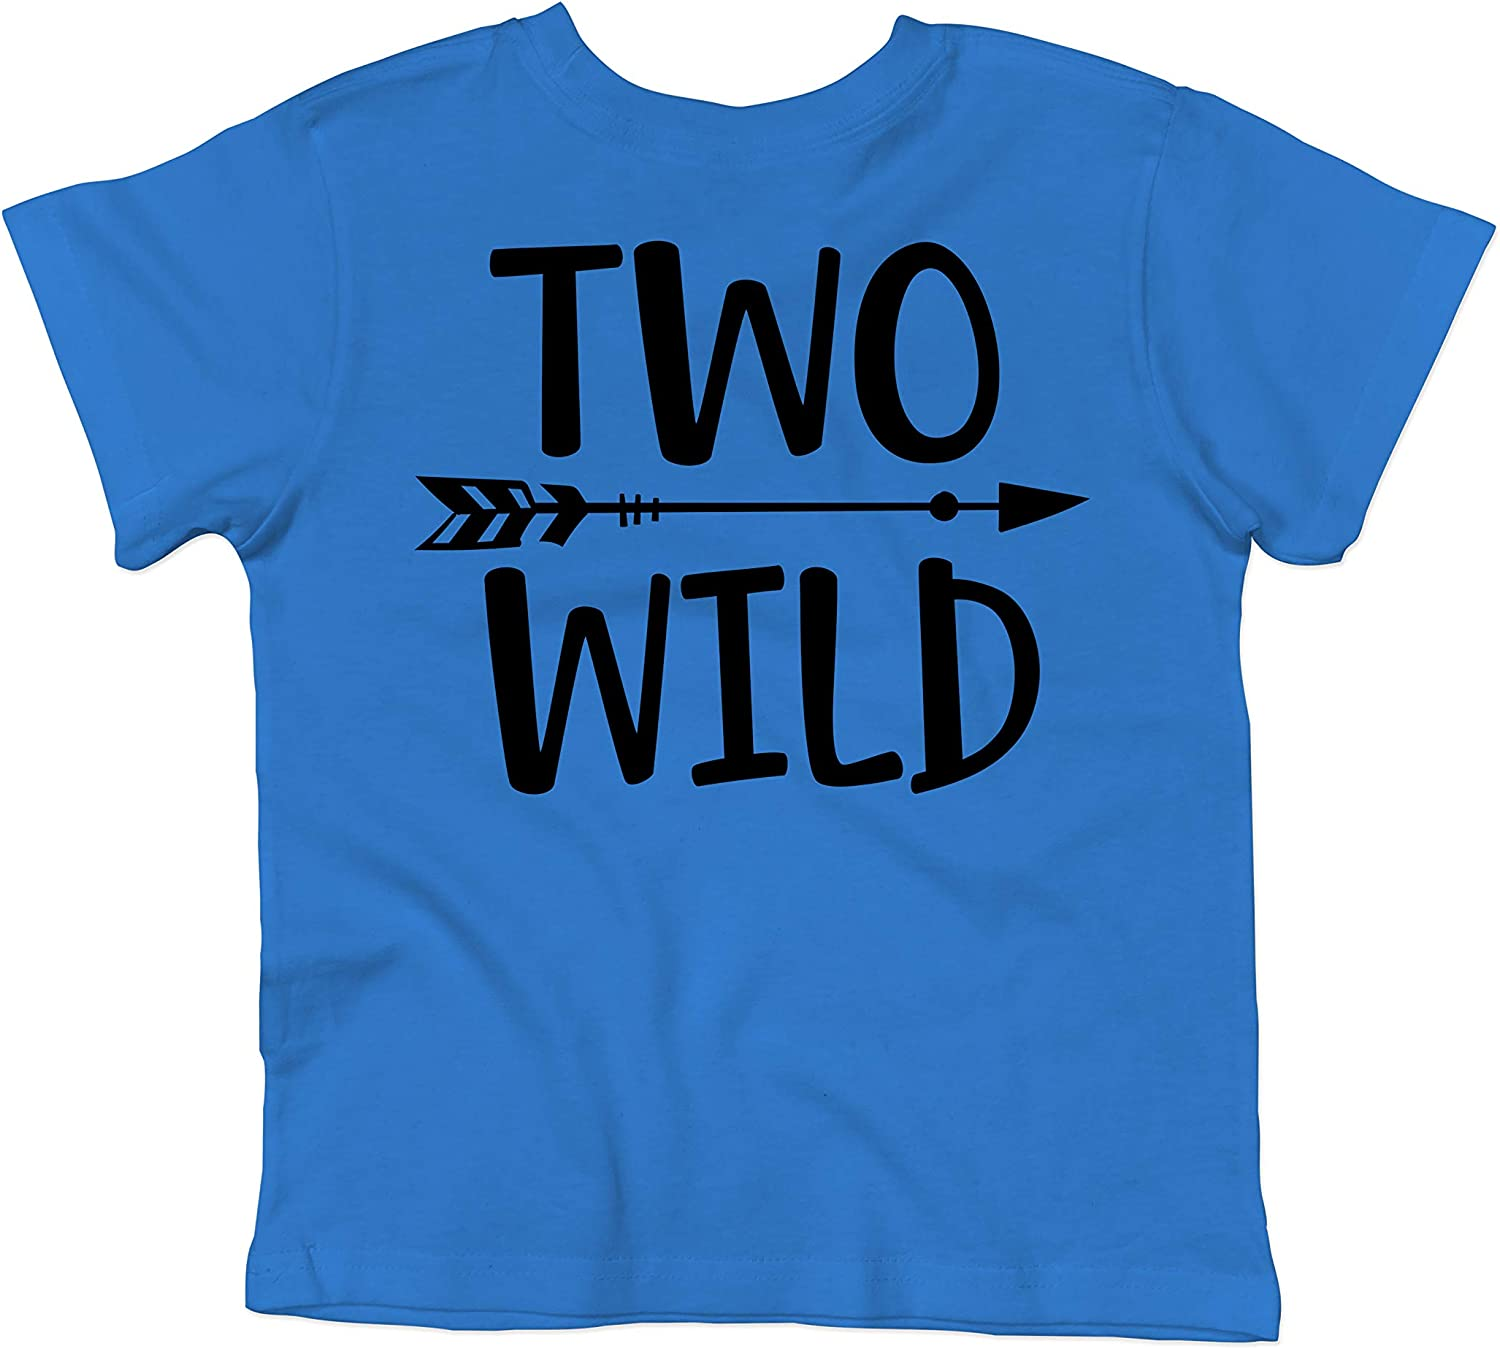 Olive Loves Apple Two Wild 2nd Birthday Shirt for Toddler Boys 2nd Birthday Shirt Boy 3//4 Sleeve